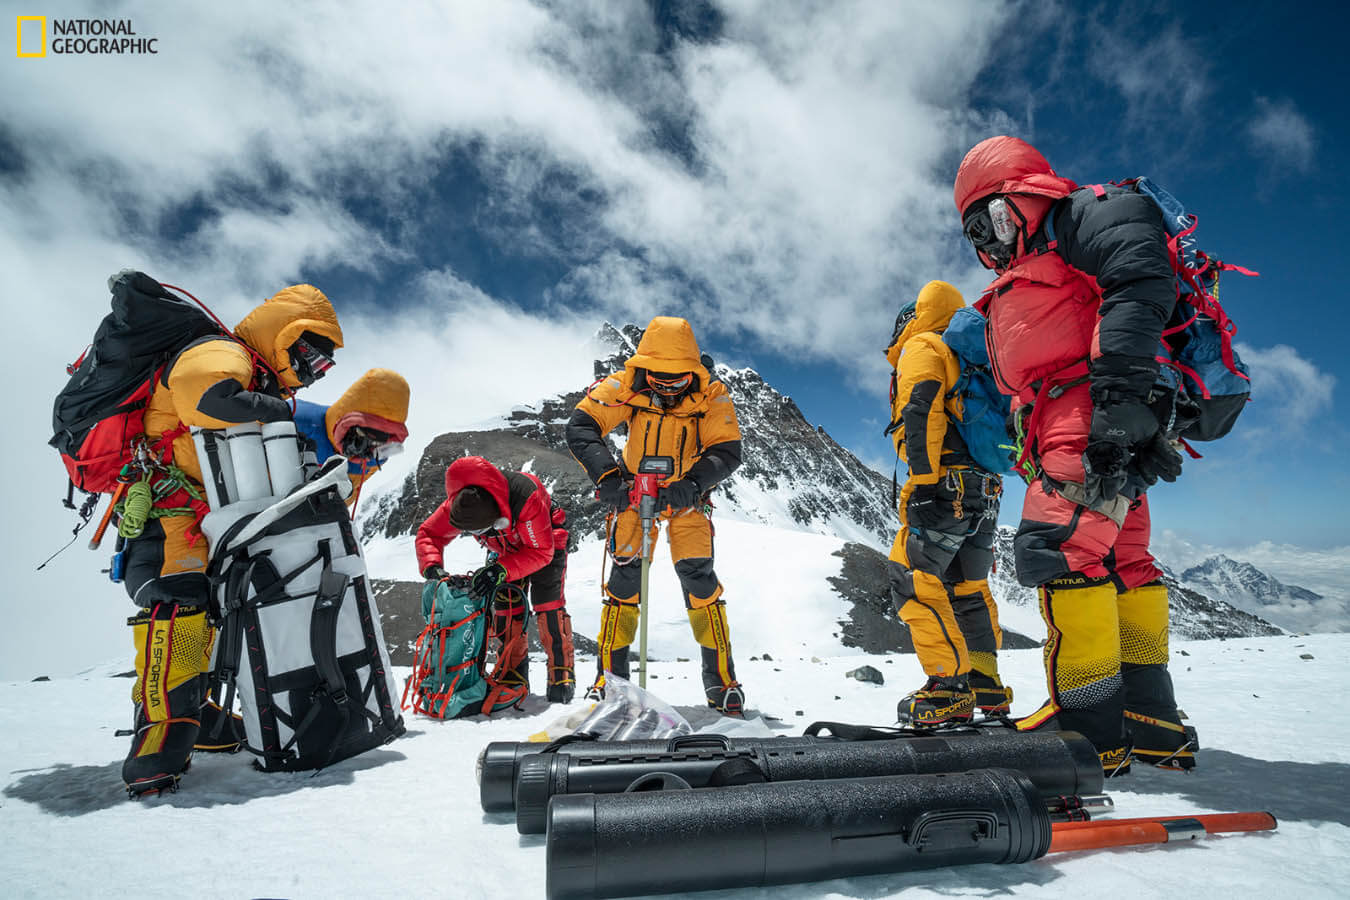 A team drills an ice core on Mount Everest.